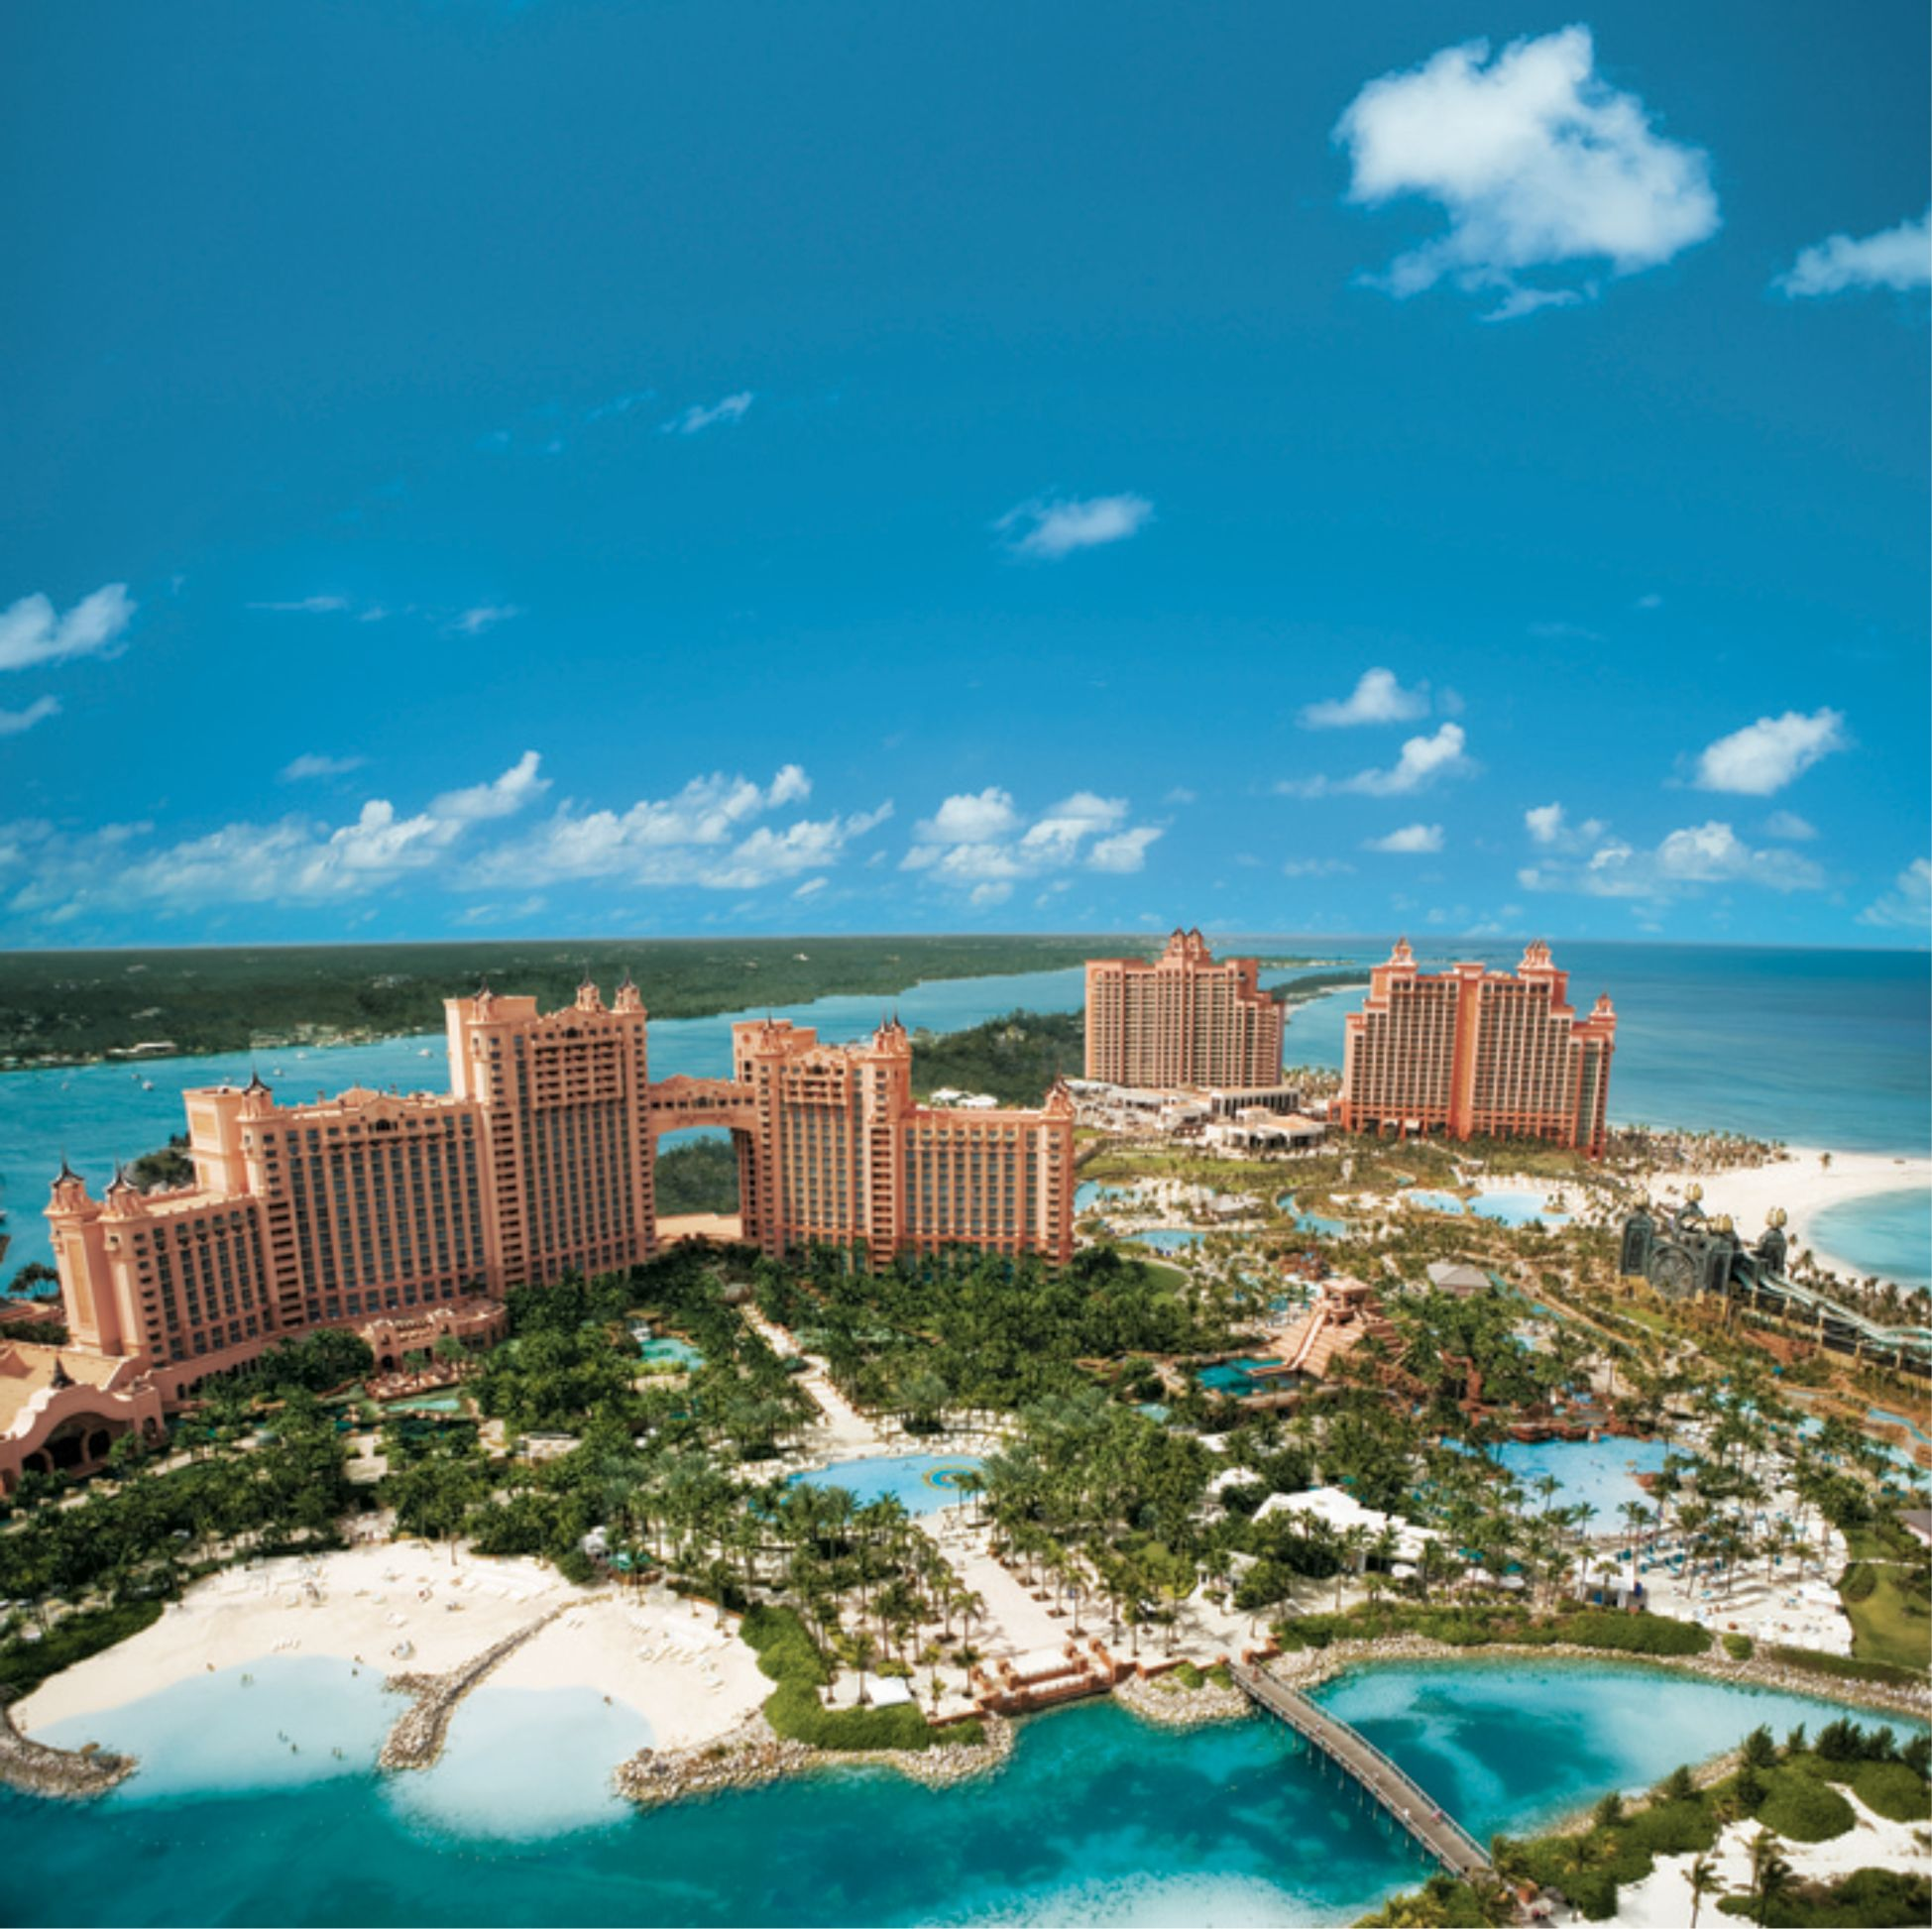 how to visit the atlantis resort if you're not a guest